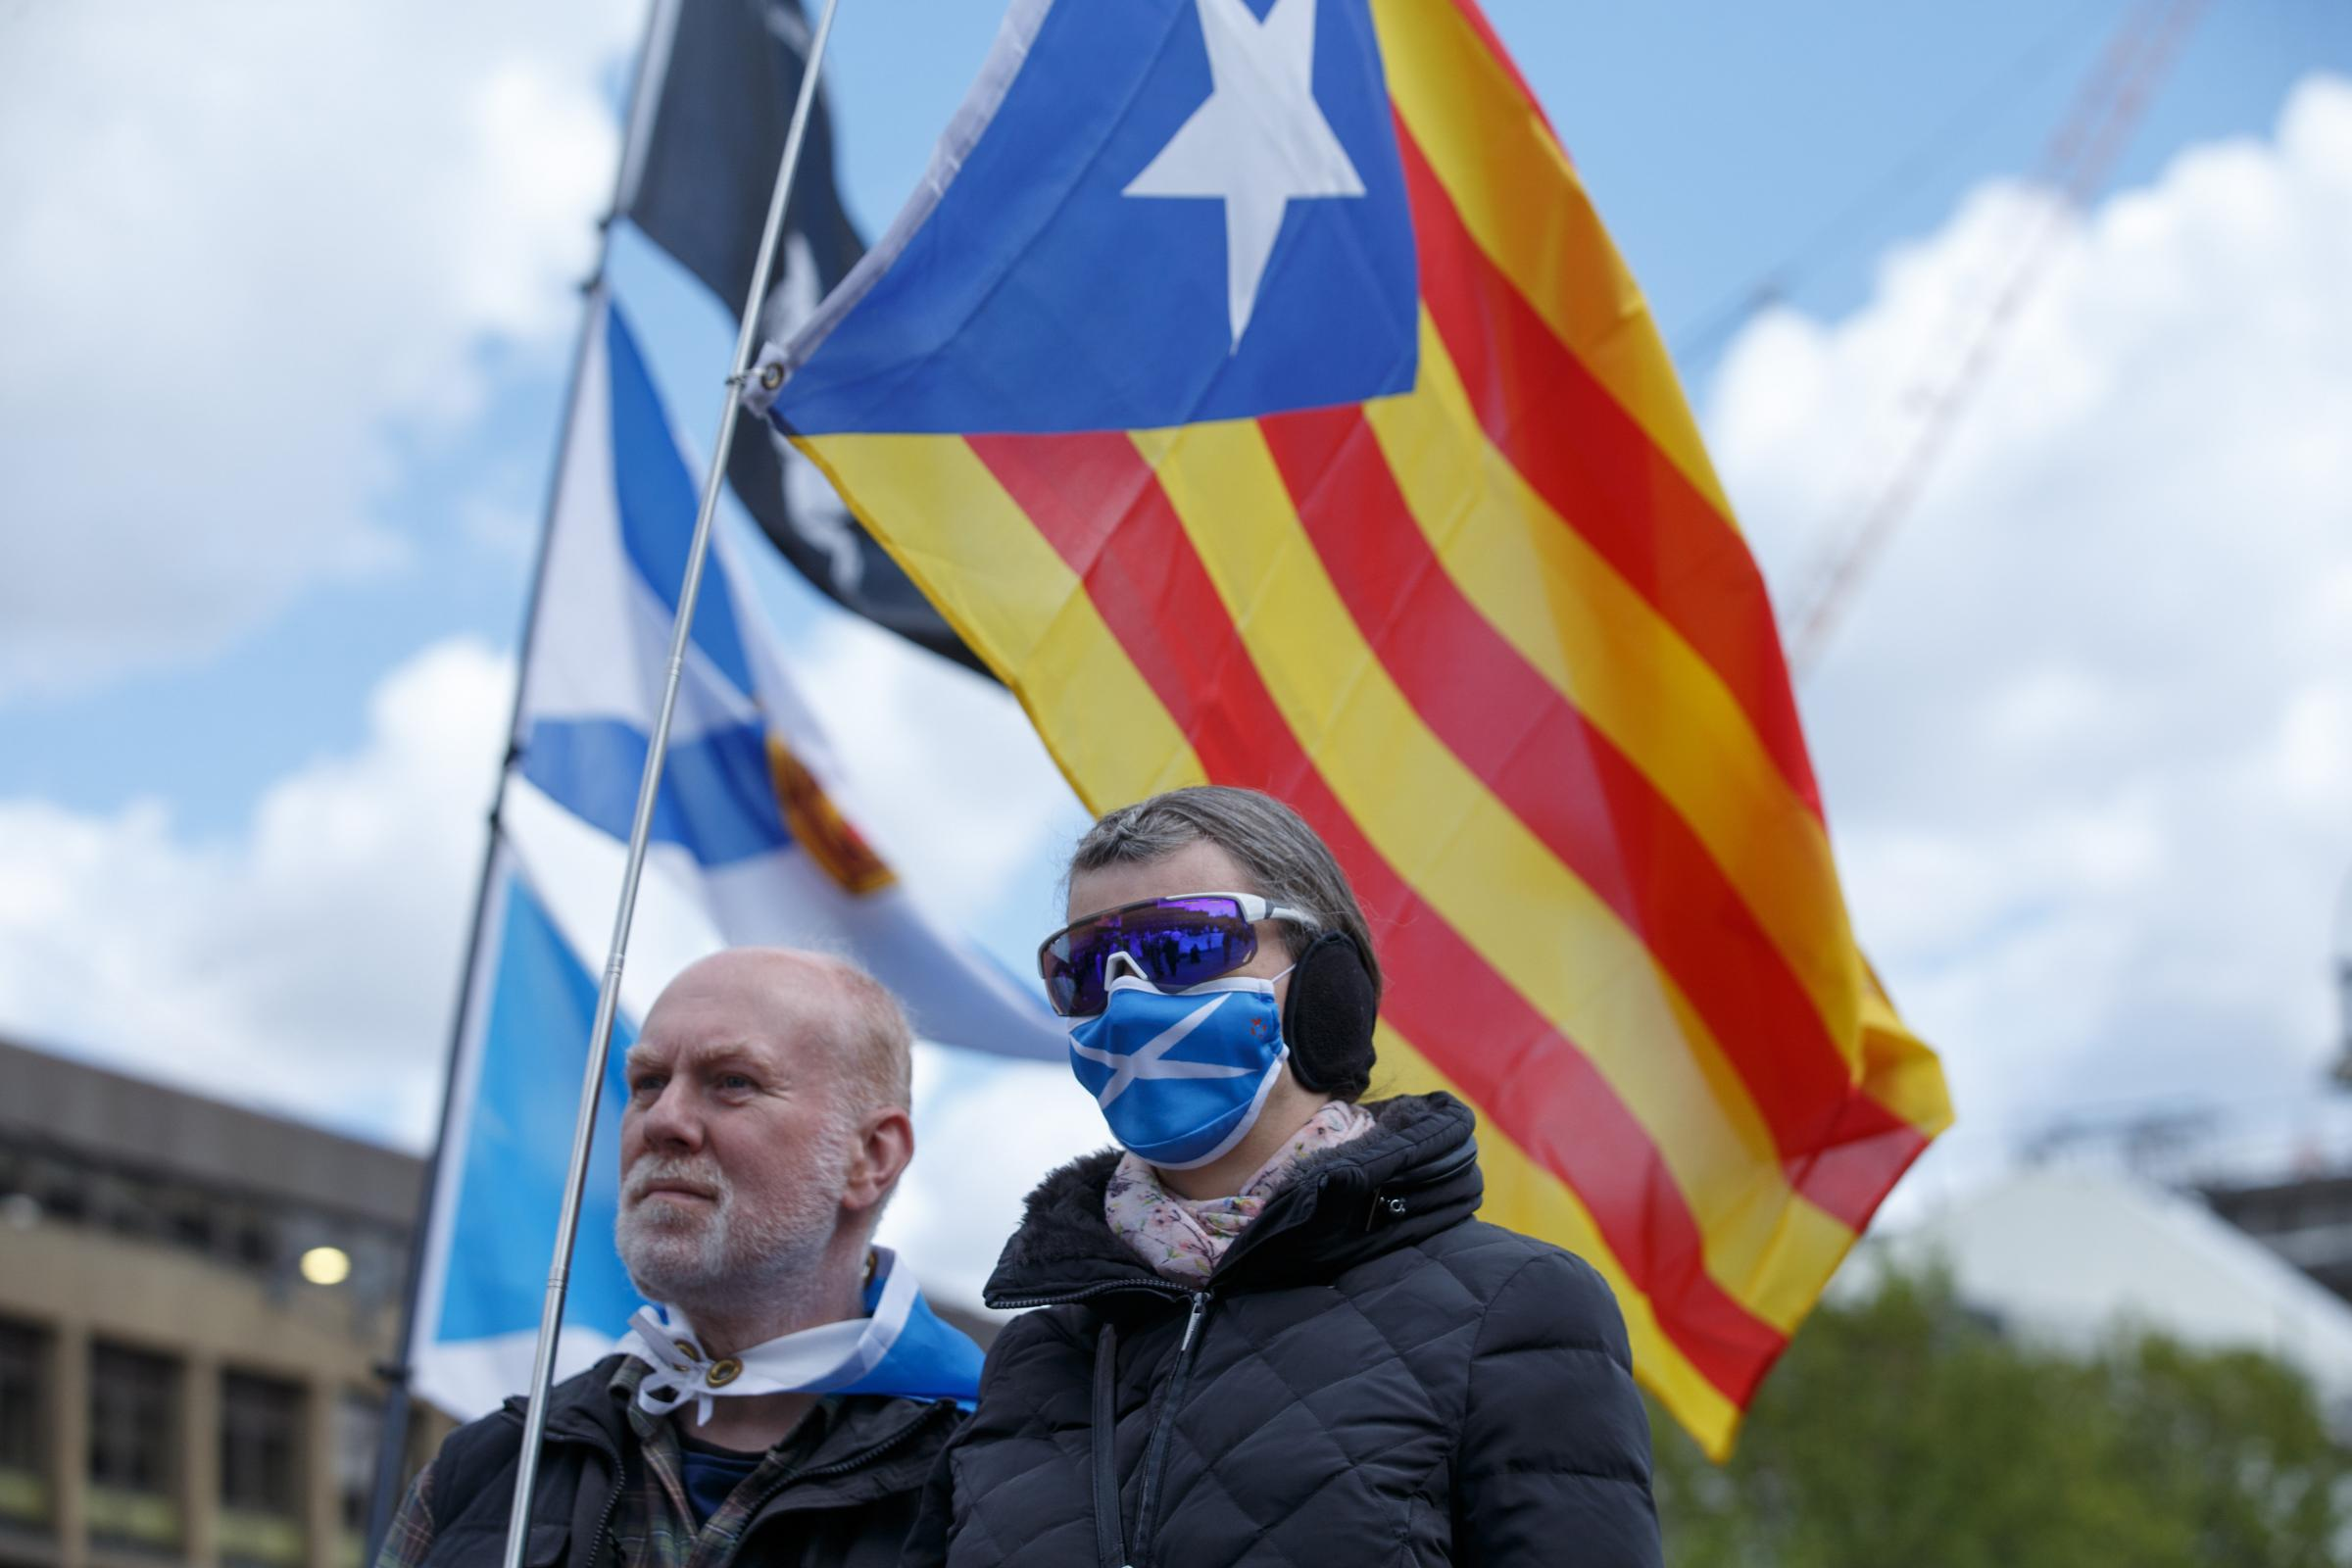 All Under One Banner announce independence march plans for 2022